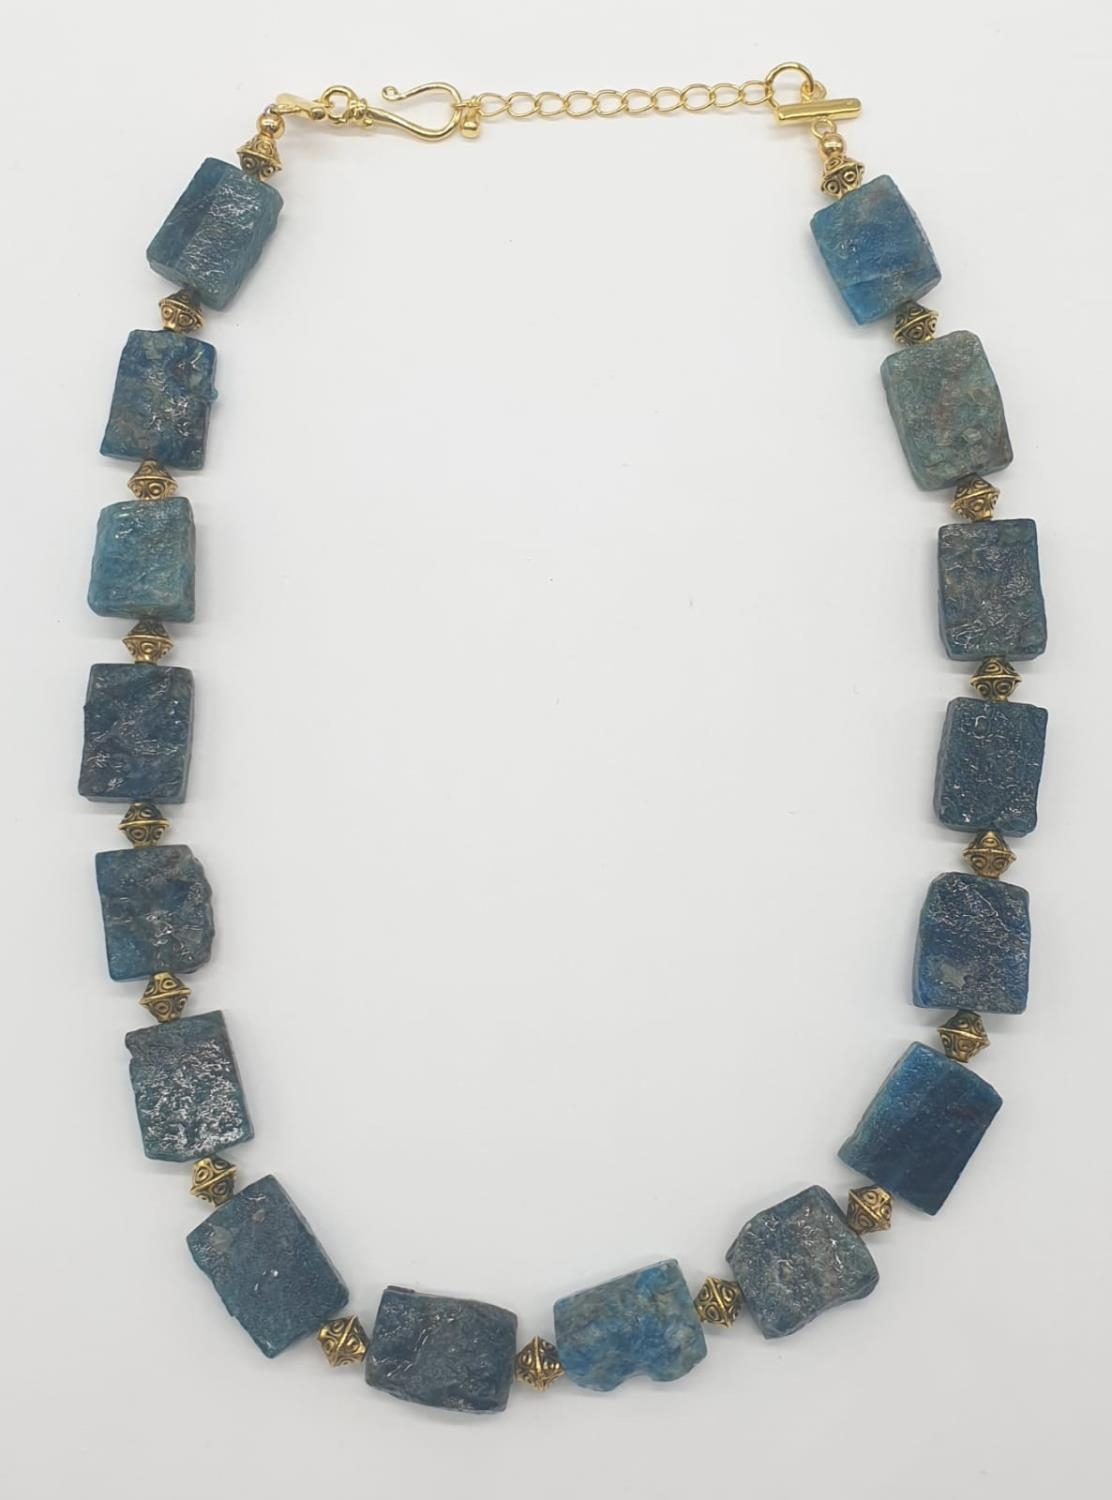 A necklace and earrings set made of Brazilian bluish apatite in its natural state. In a gift box, - Image 7 of 9